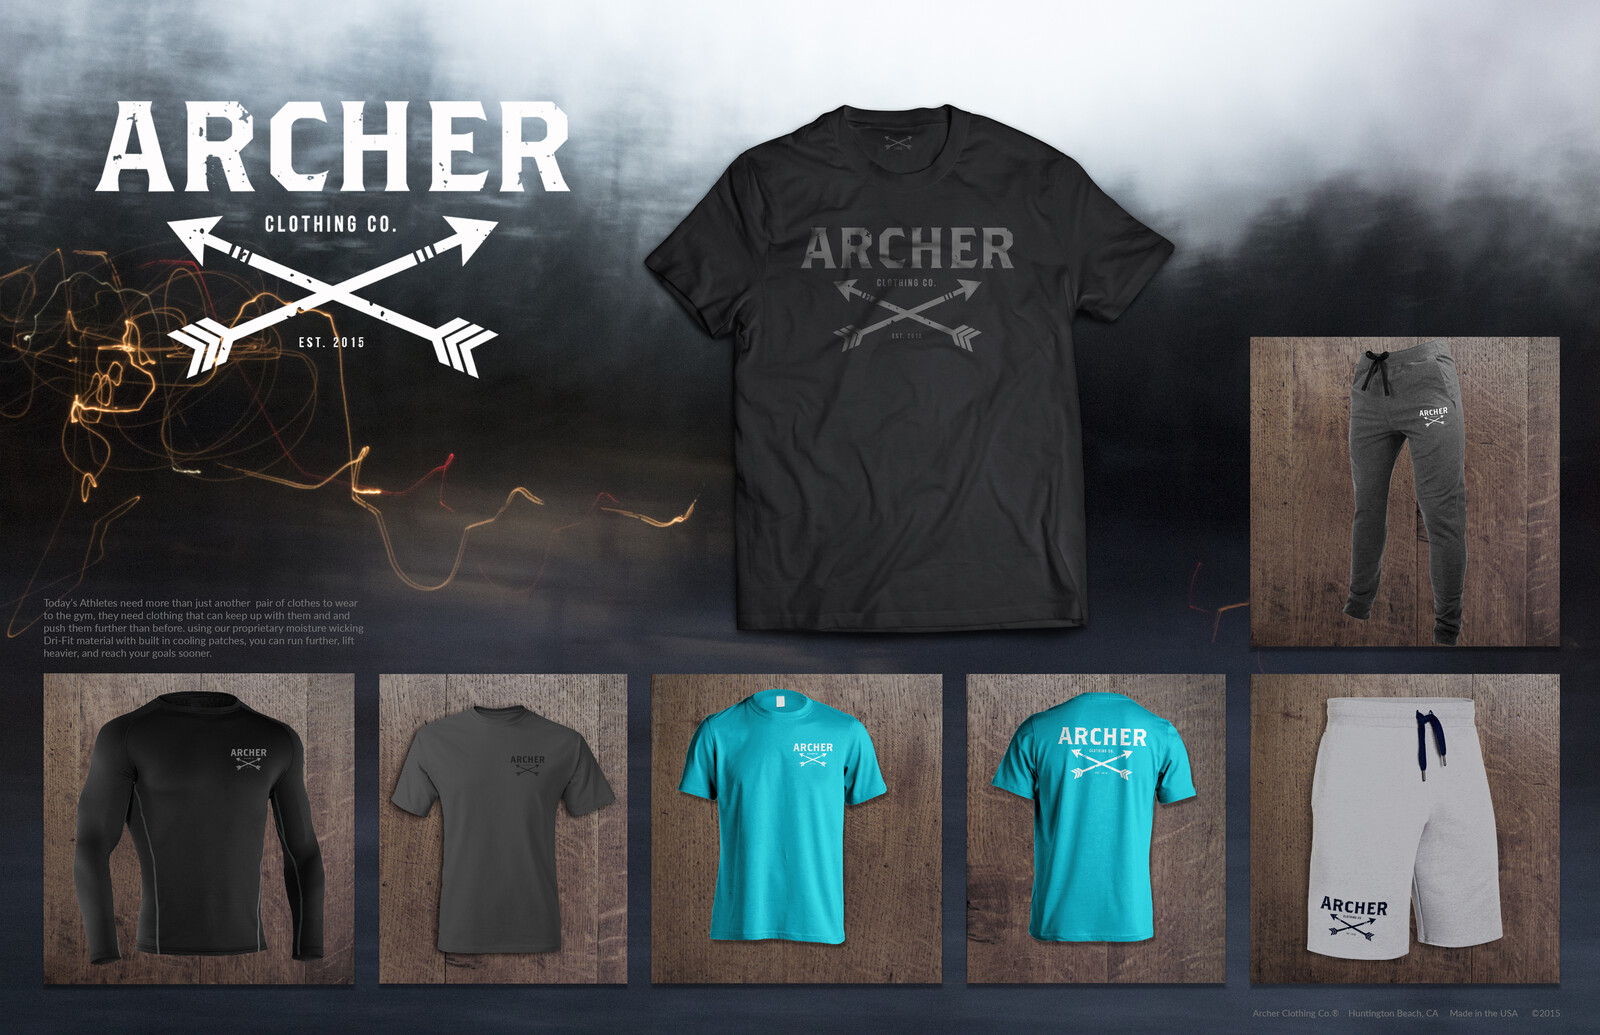 Archer Clothing